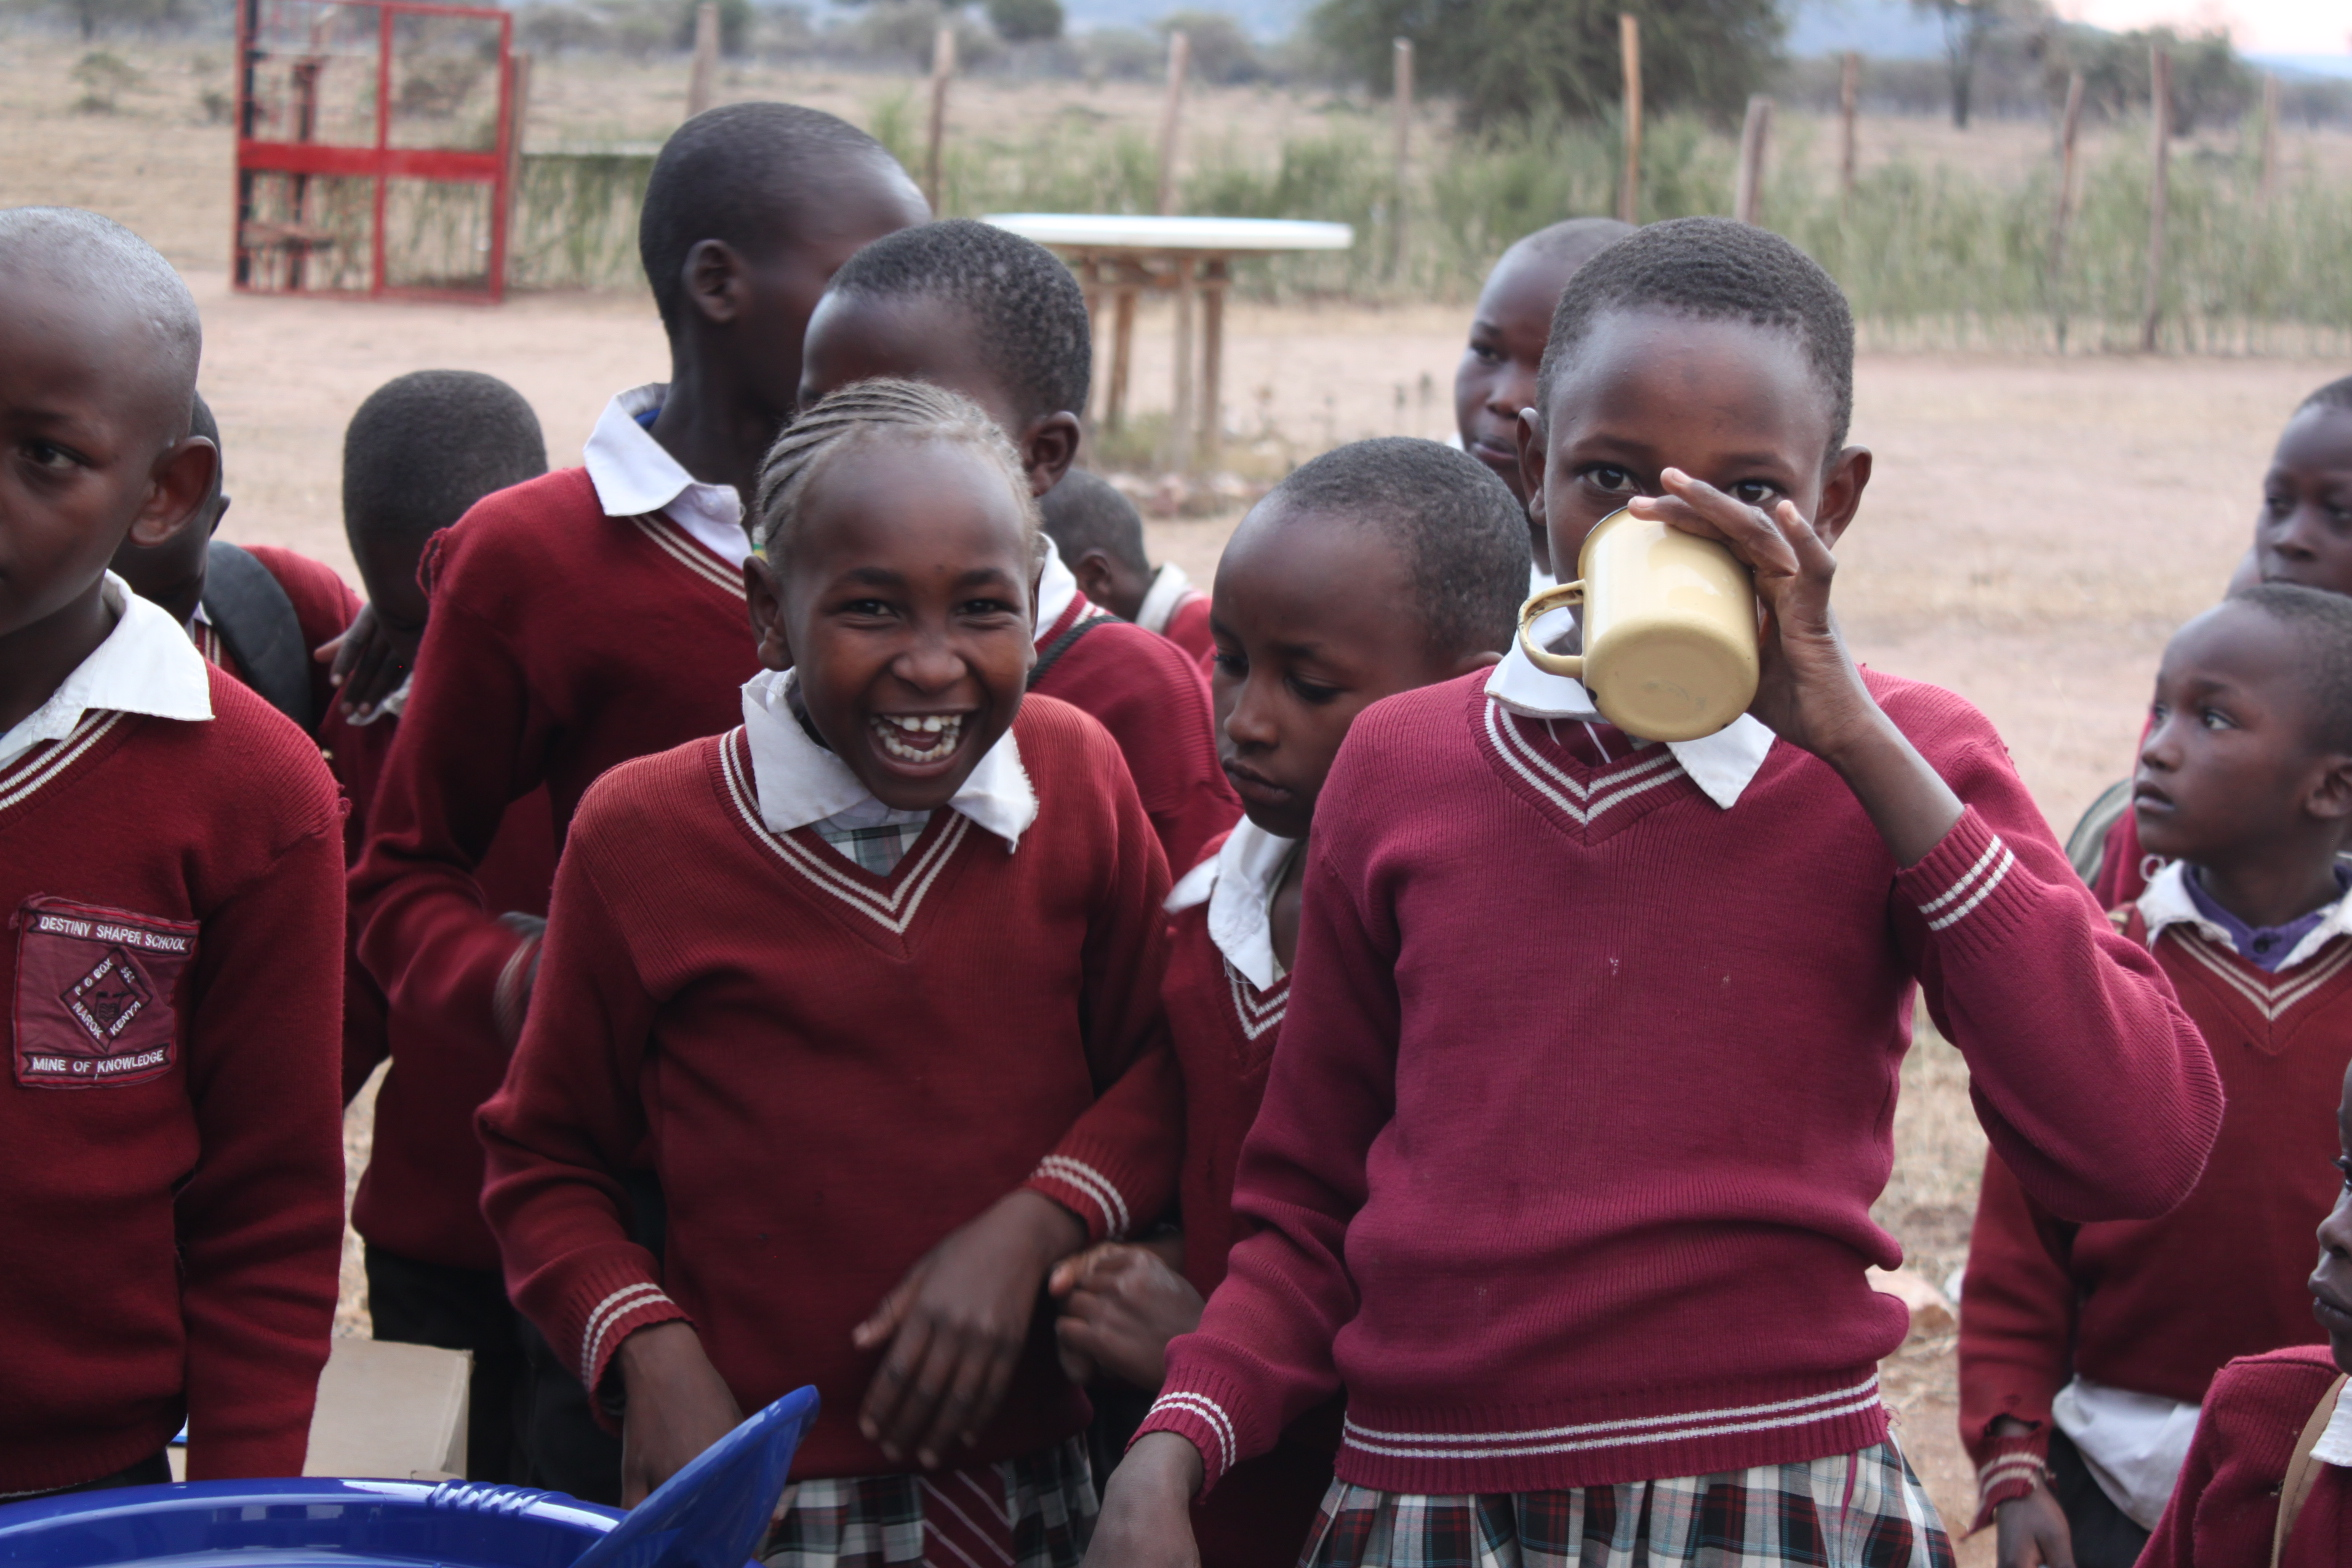 We believe - Everyone has the right to proper health and sanitation